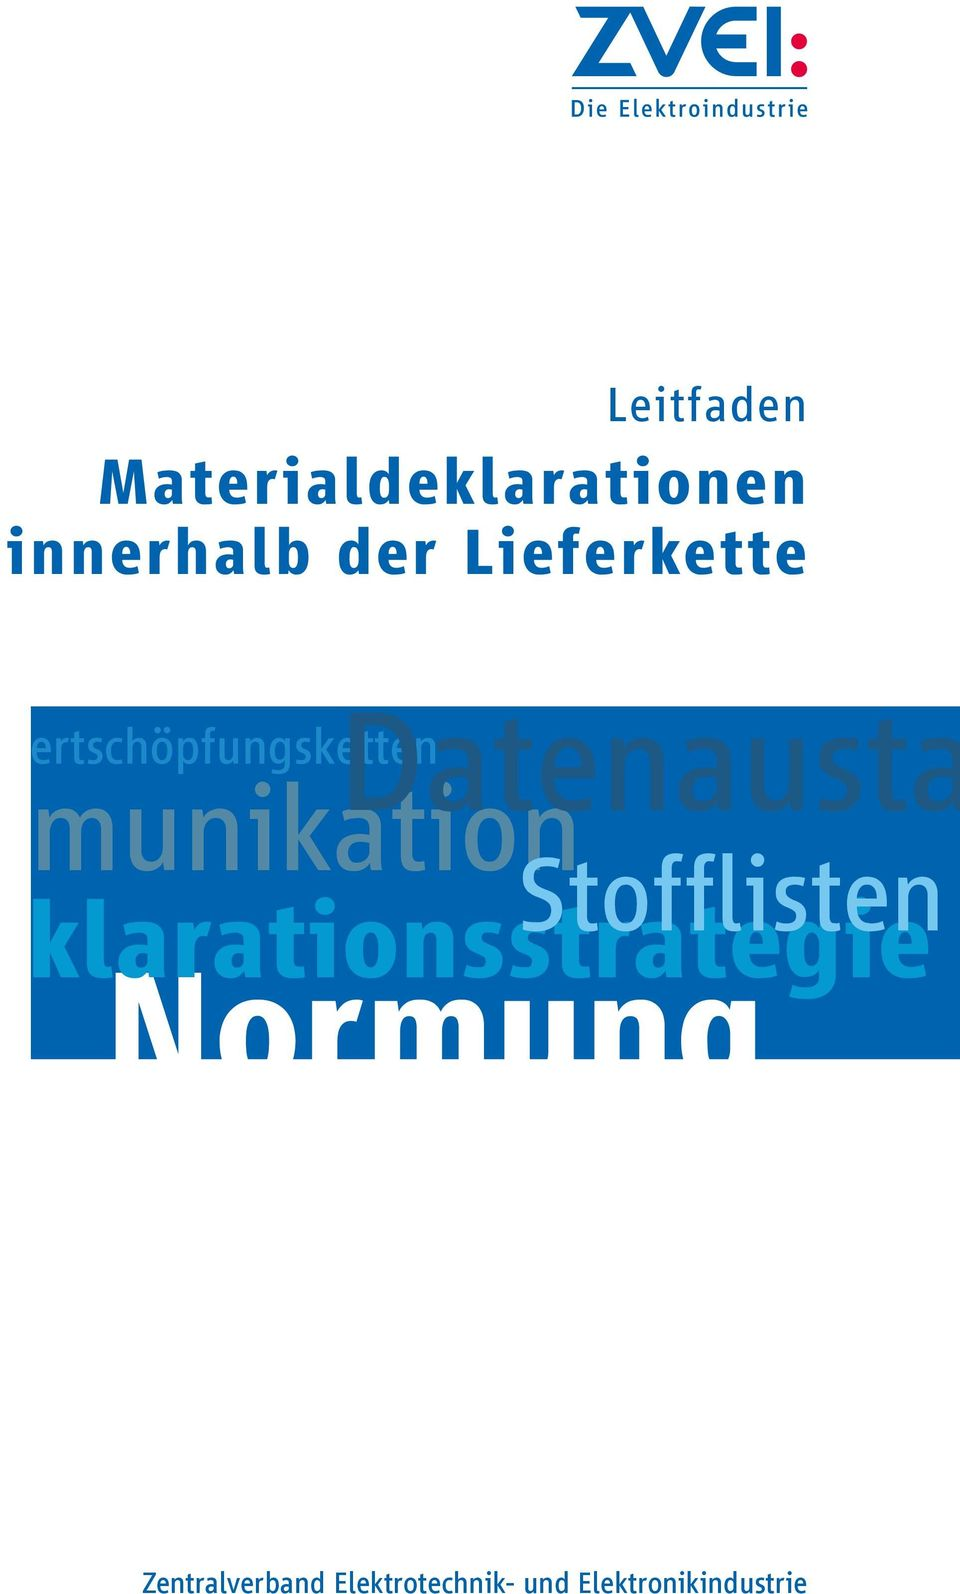 Datenausta Stofflisten klarationsstrategie